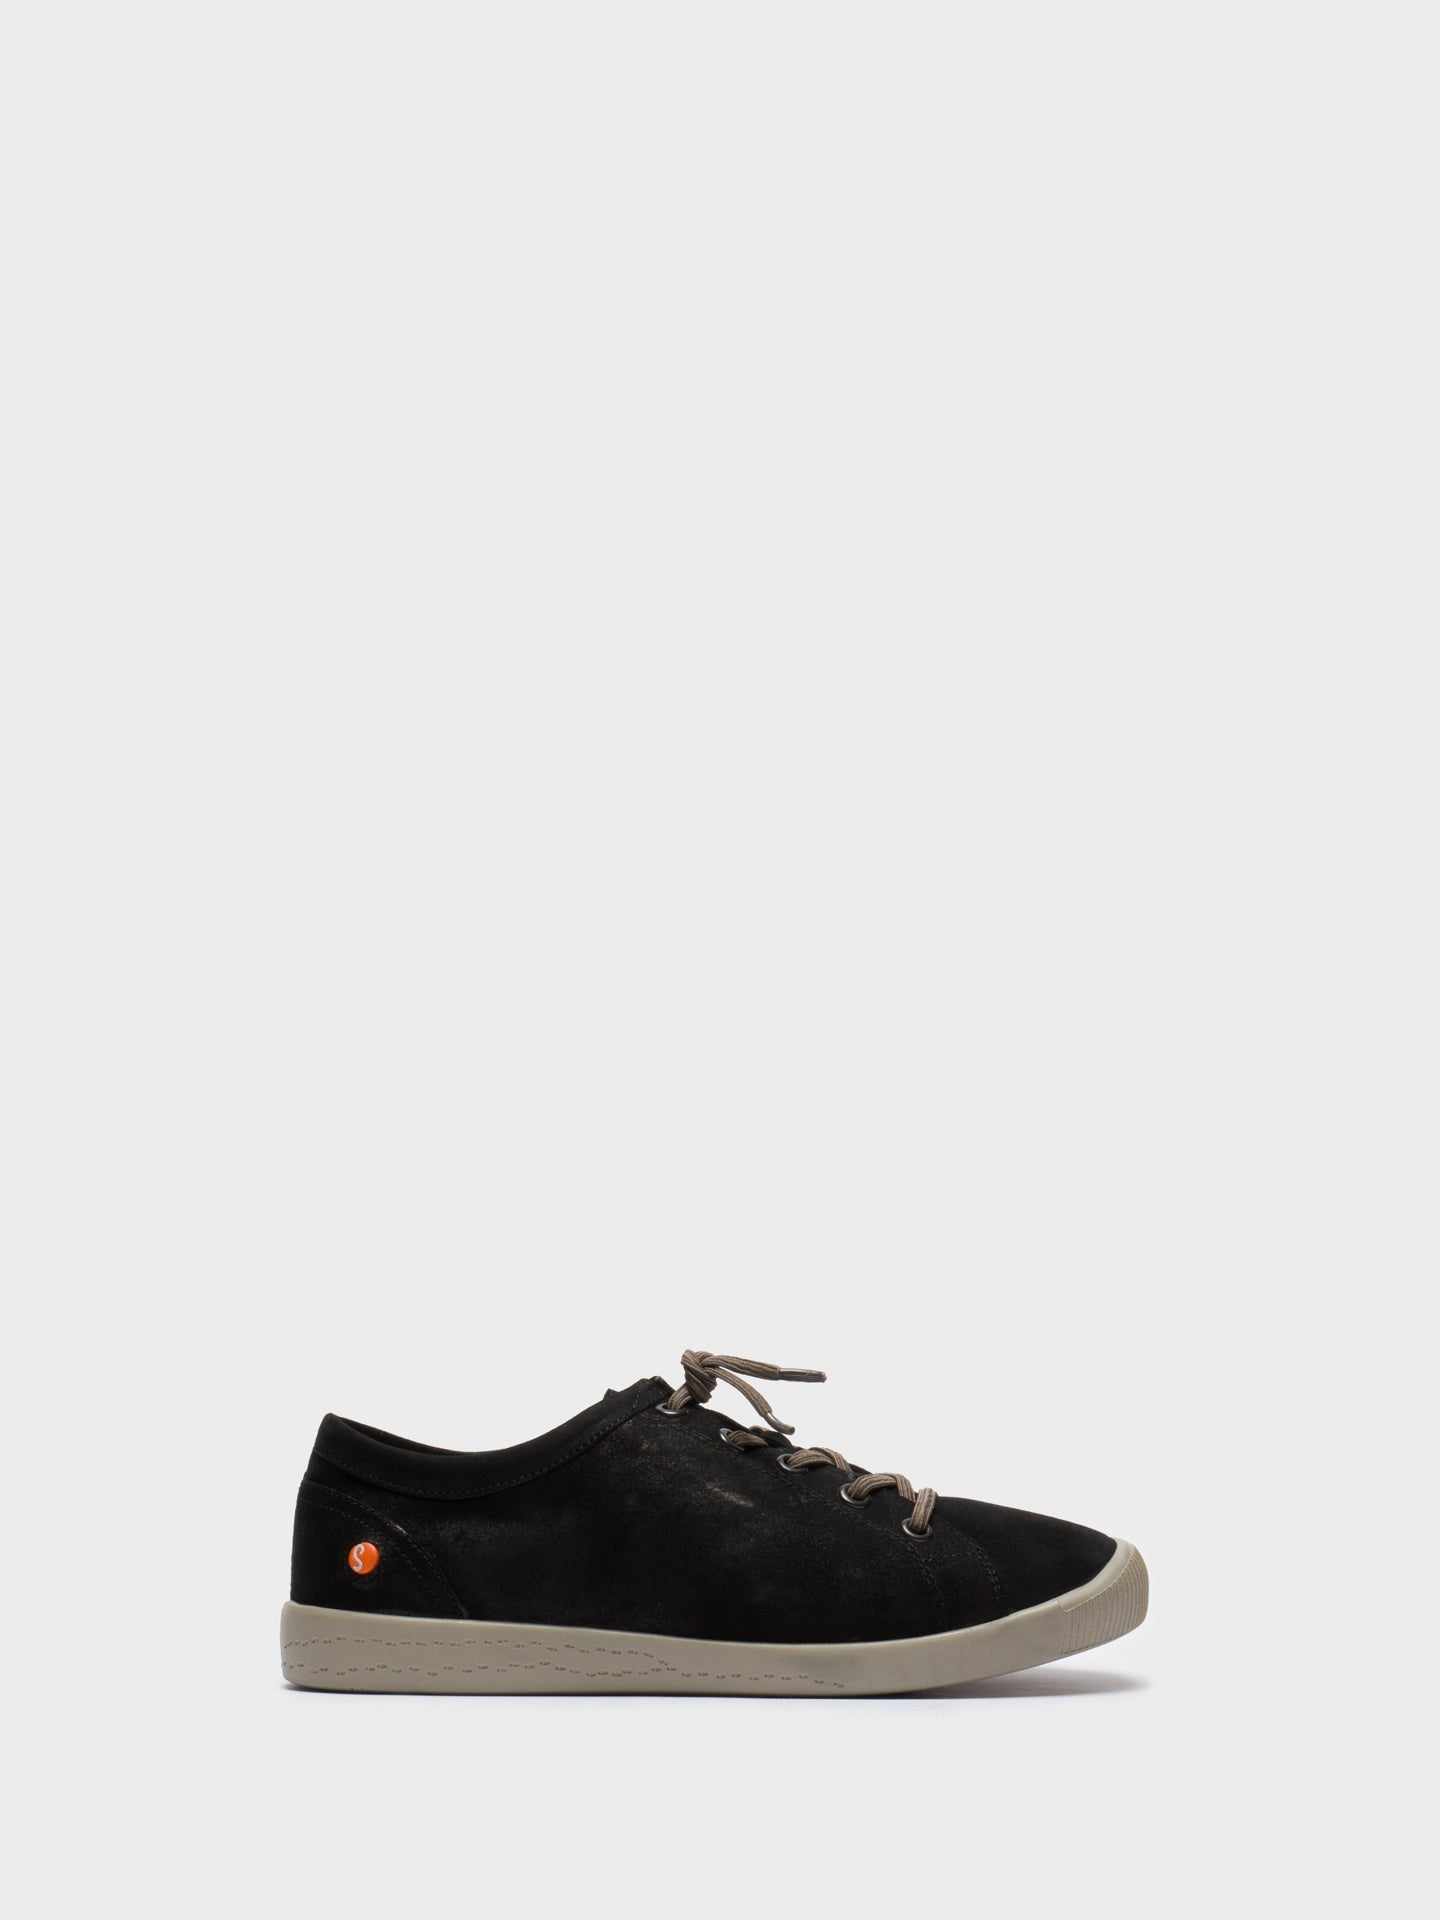 Softinos Black Low-Top Sneakers